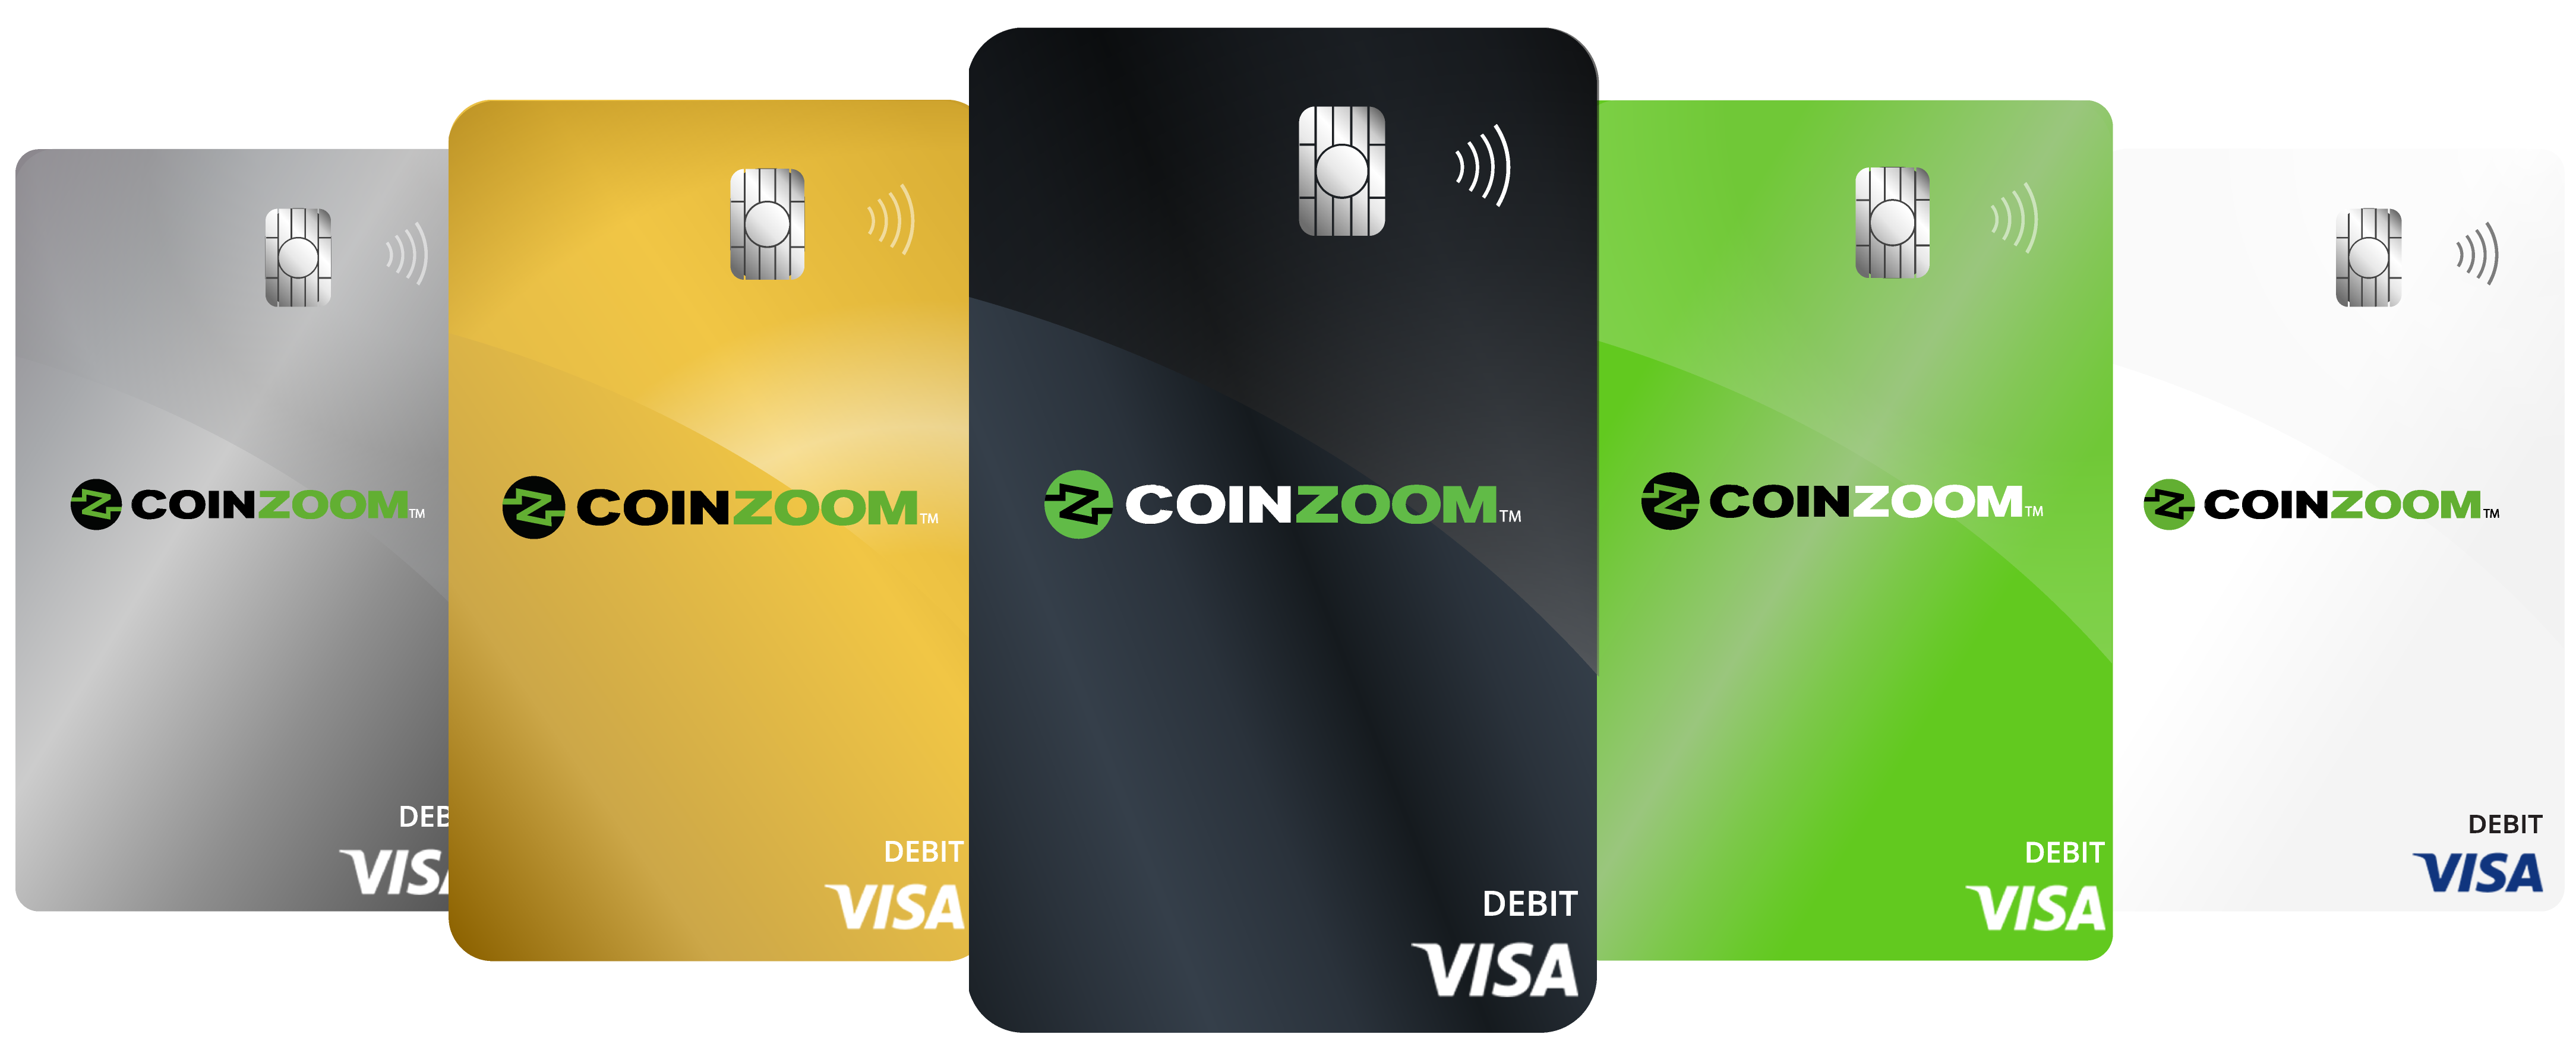 CoinZoom - Cards